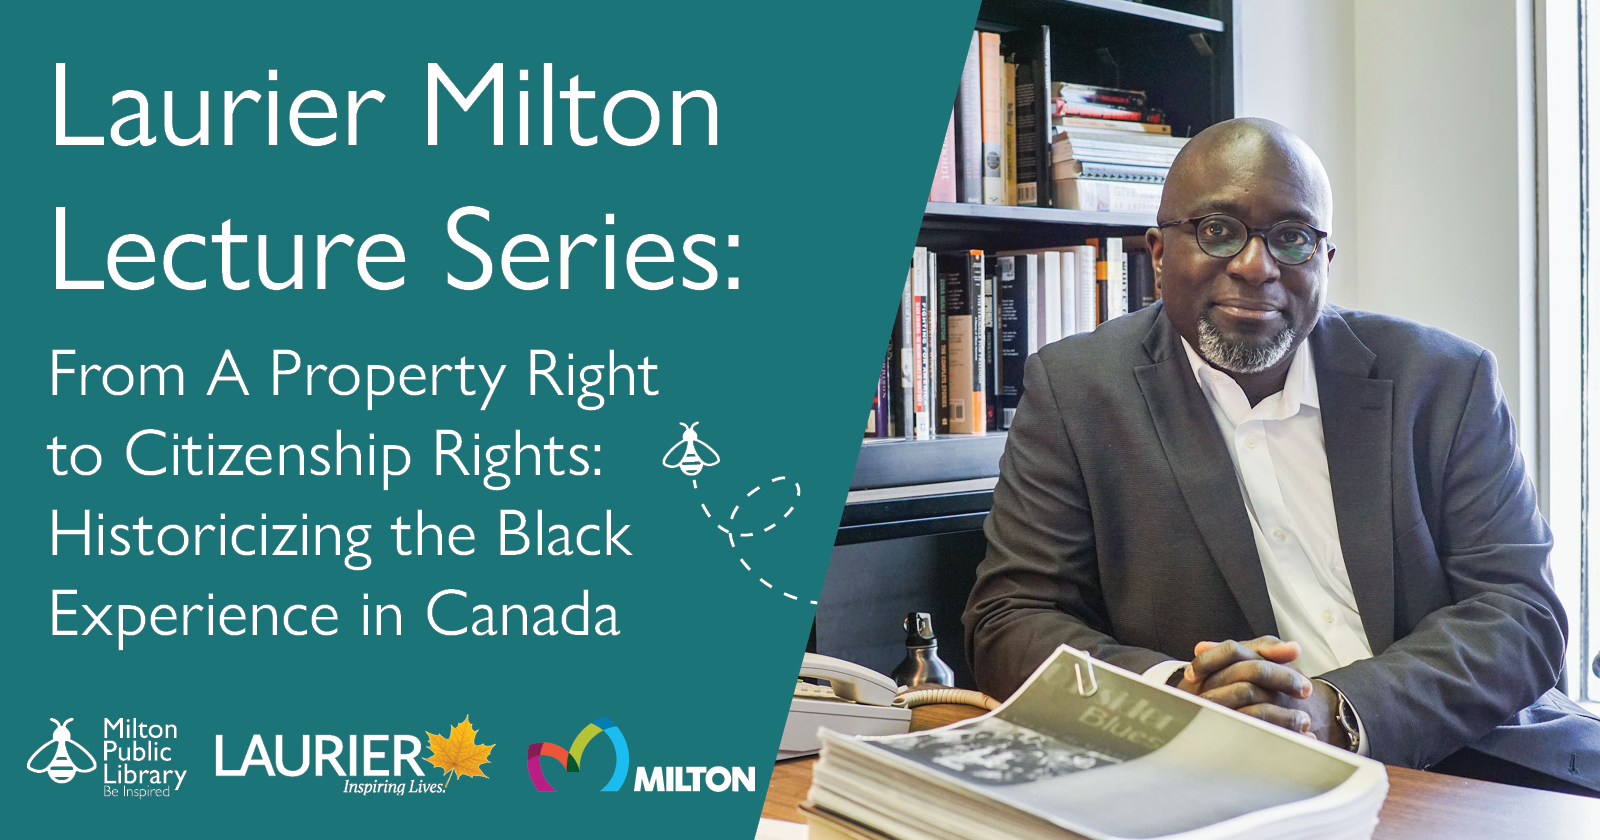 link to From a property right to citizenship rights historicizing the black experience in canada